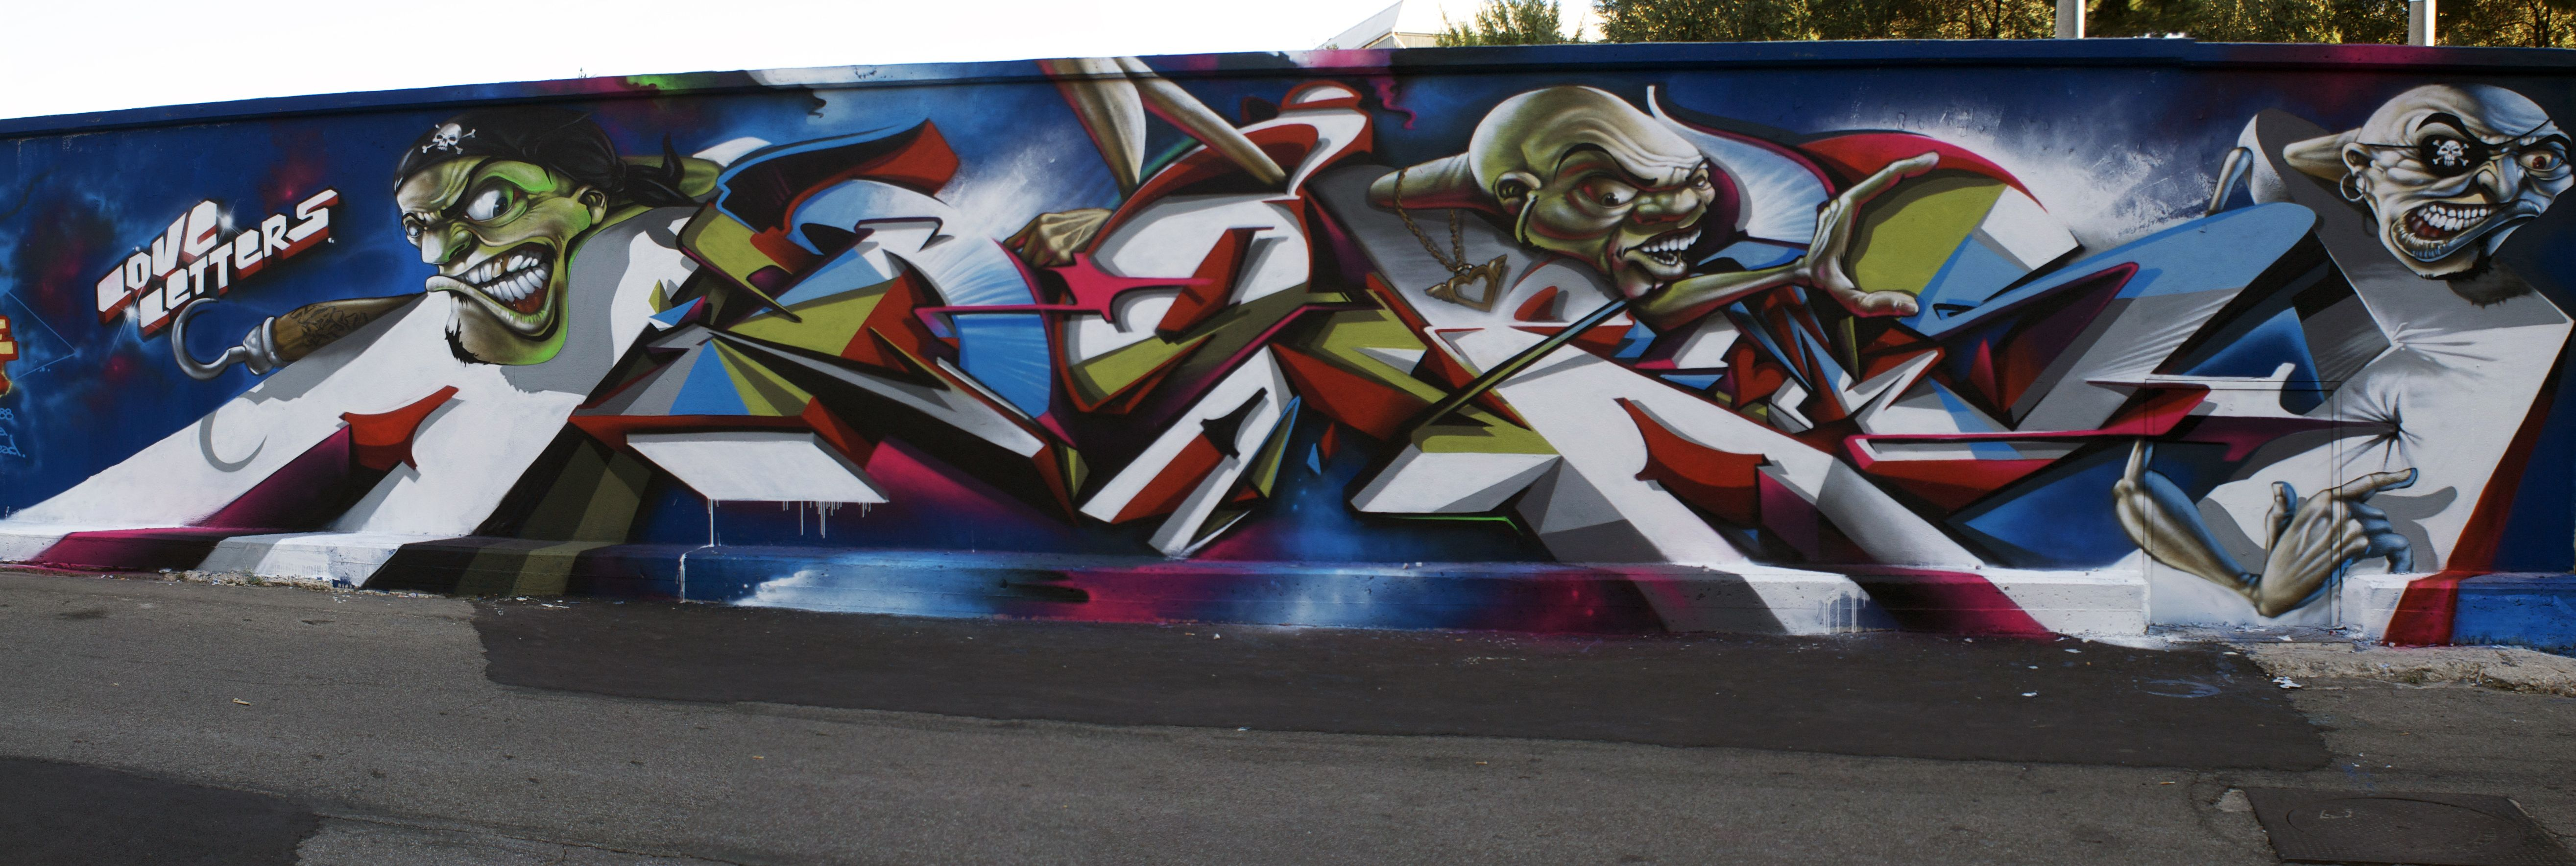 Pin by josh colwell on graffiti pinterest graffiti and graffiti art graffiti art thecheapjerseys Gallery